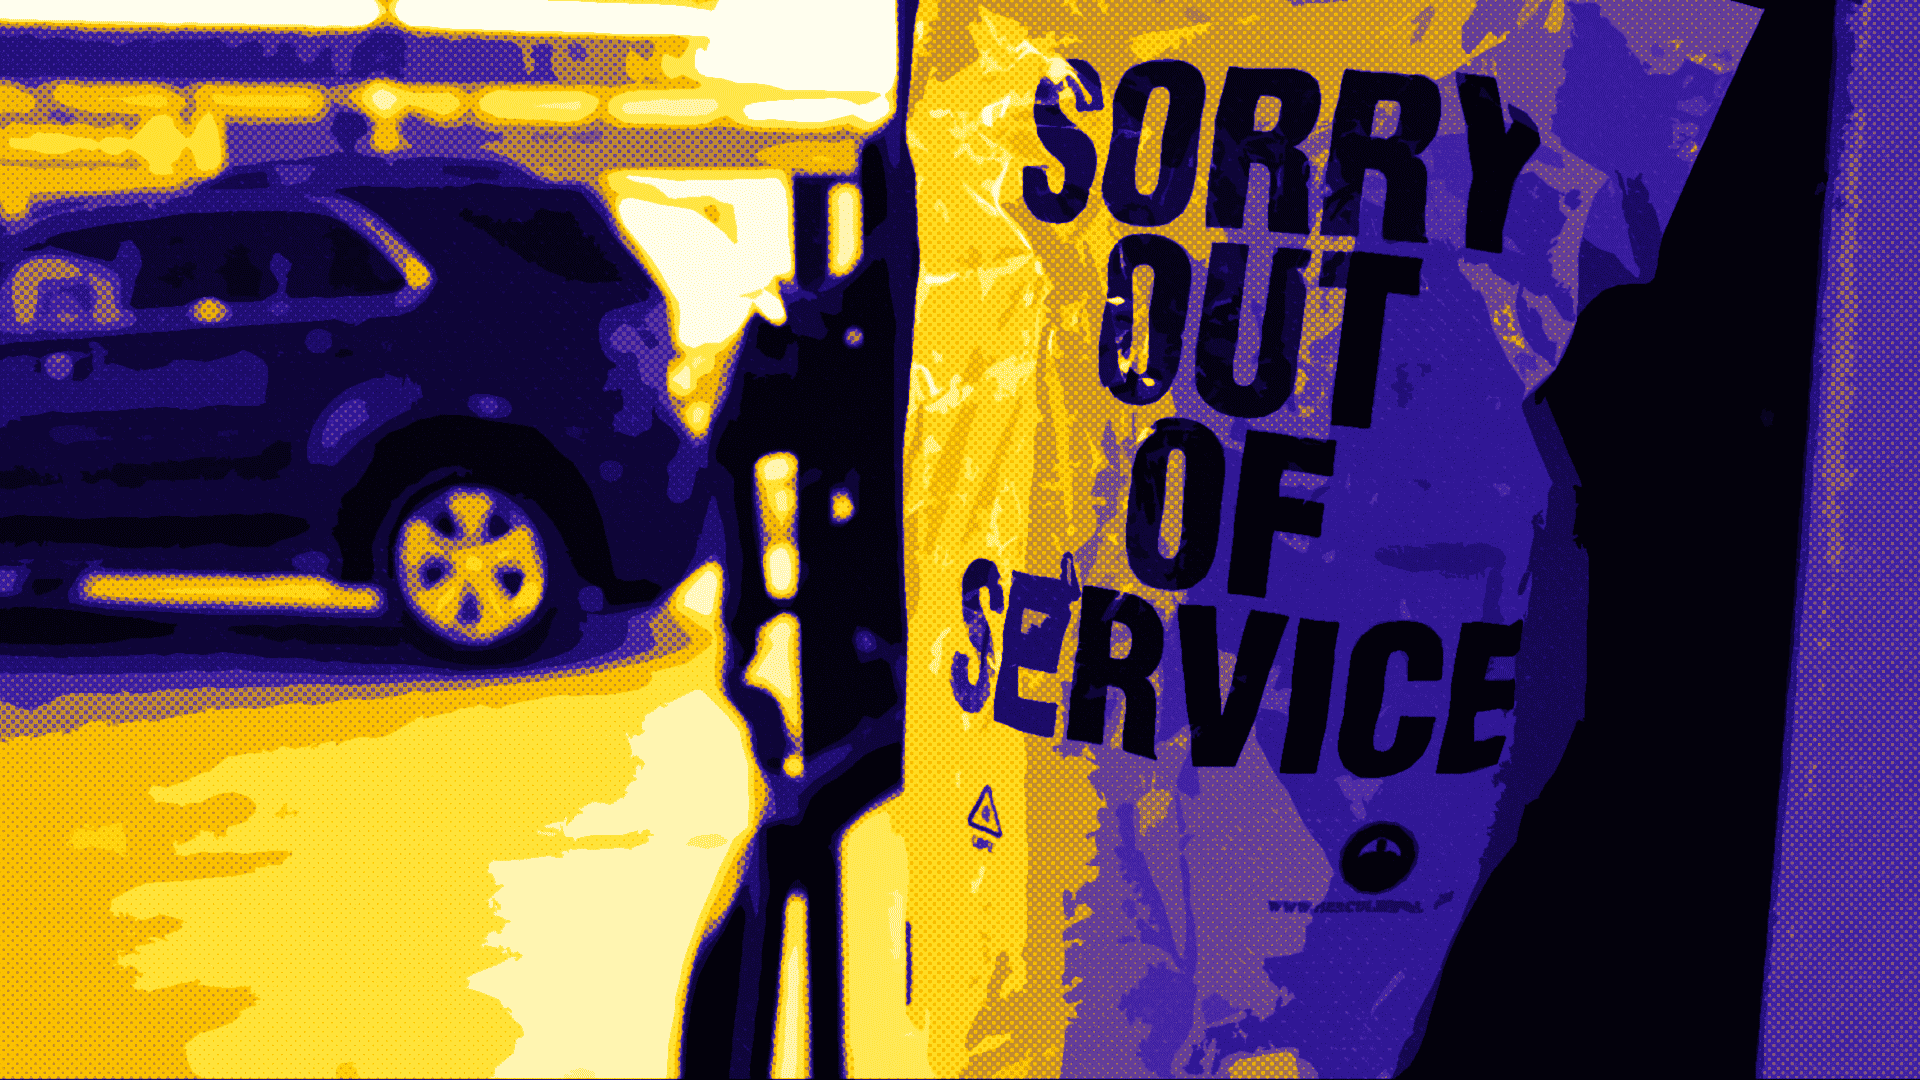 Out of service gas pump.